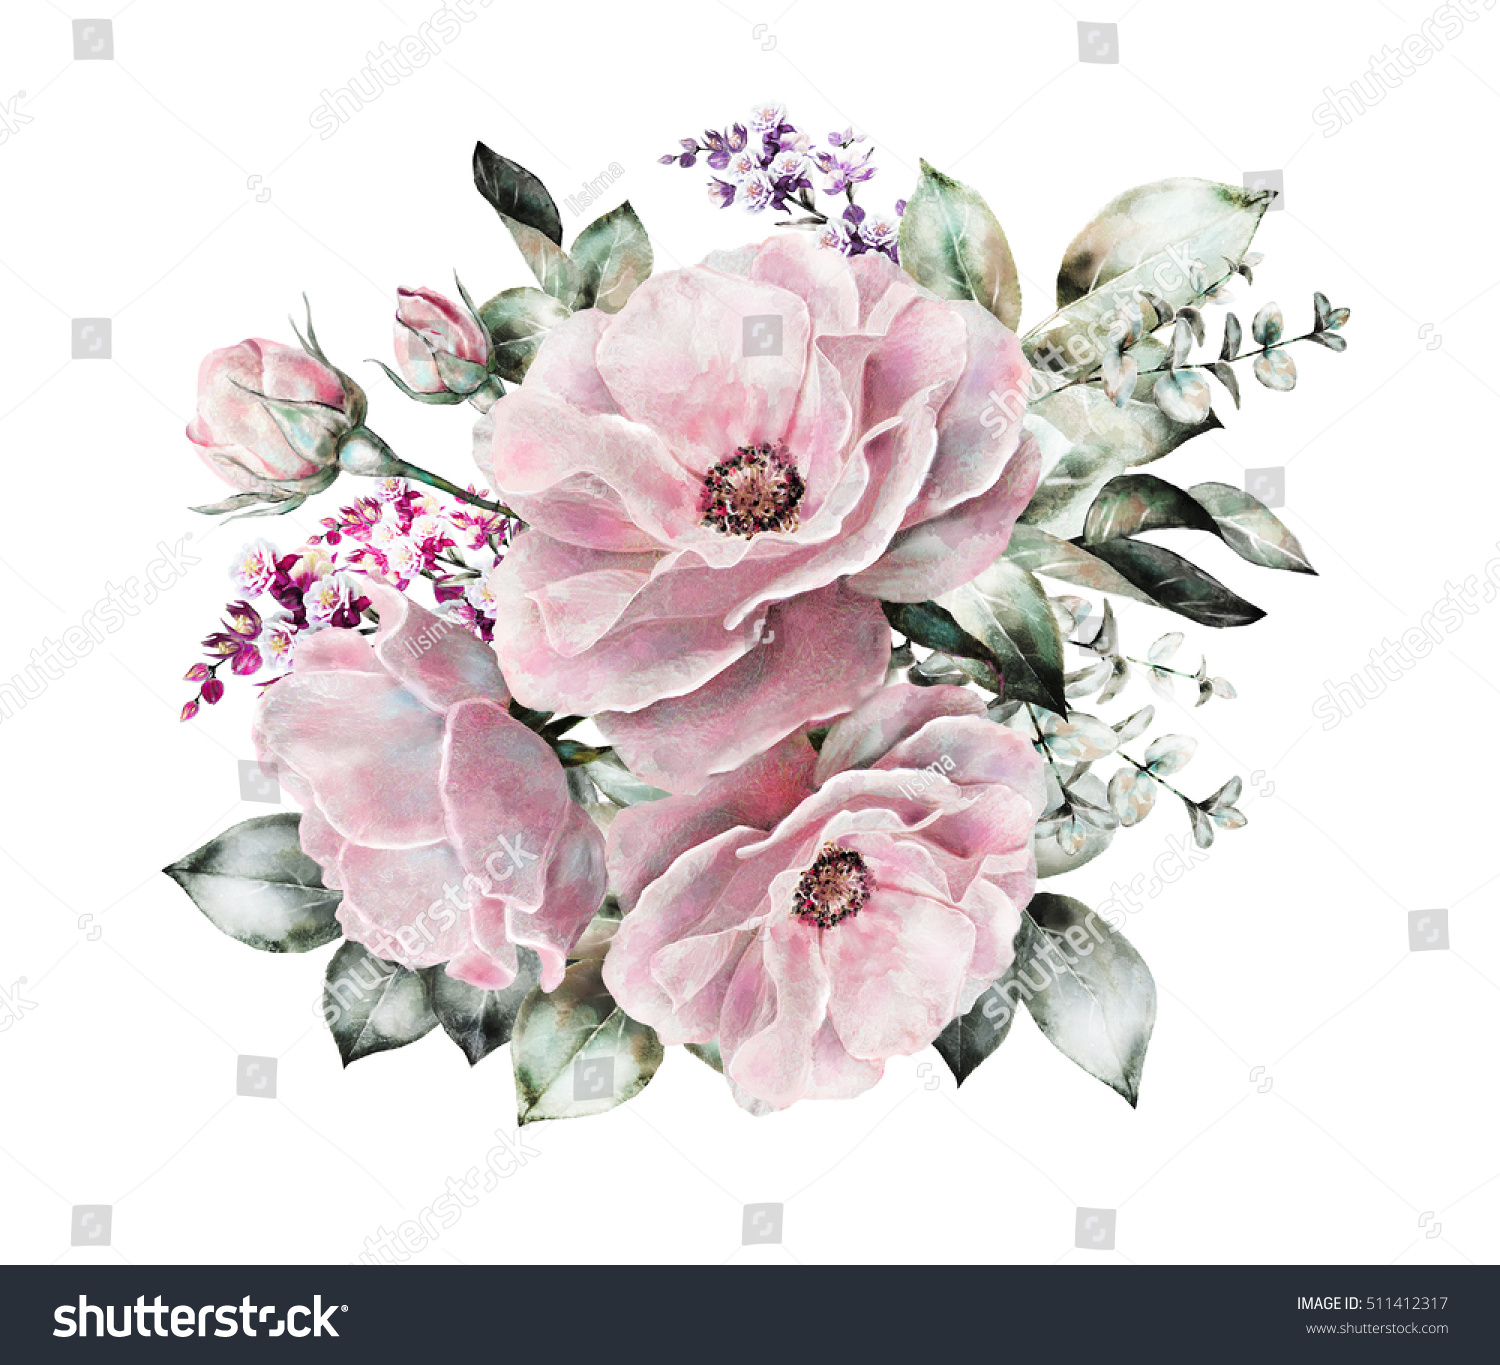 Watercolor flowers floral illustration flower pastel stock watercolor flowers floral illustration flower in pastel colors pink rose branch of mightylinksfo Gallery